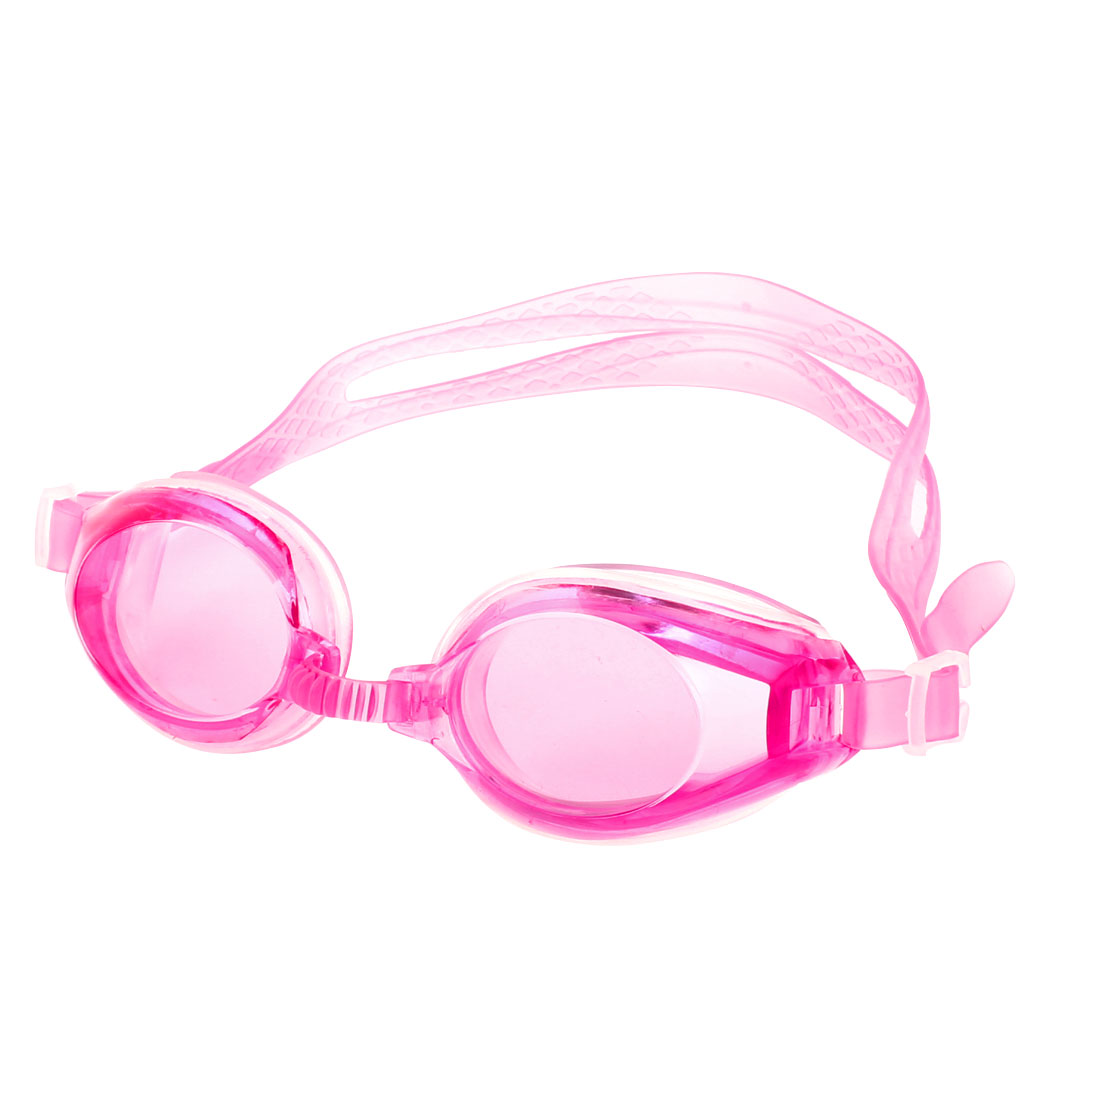 Women Men Plastic Swimming Swim Goggles Glassses Pink w Earplugs